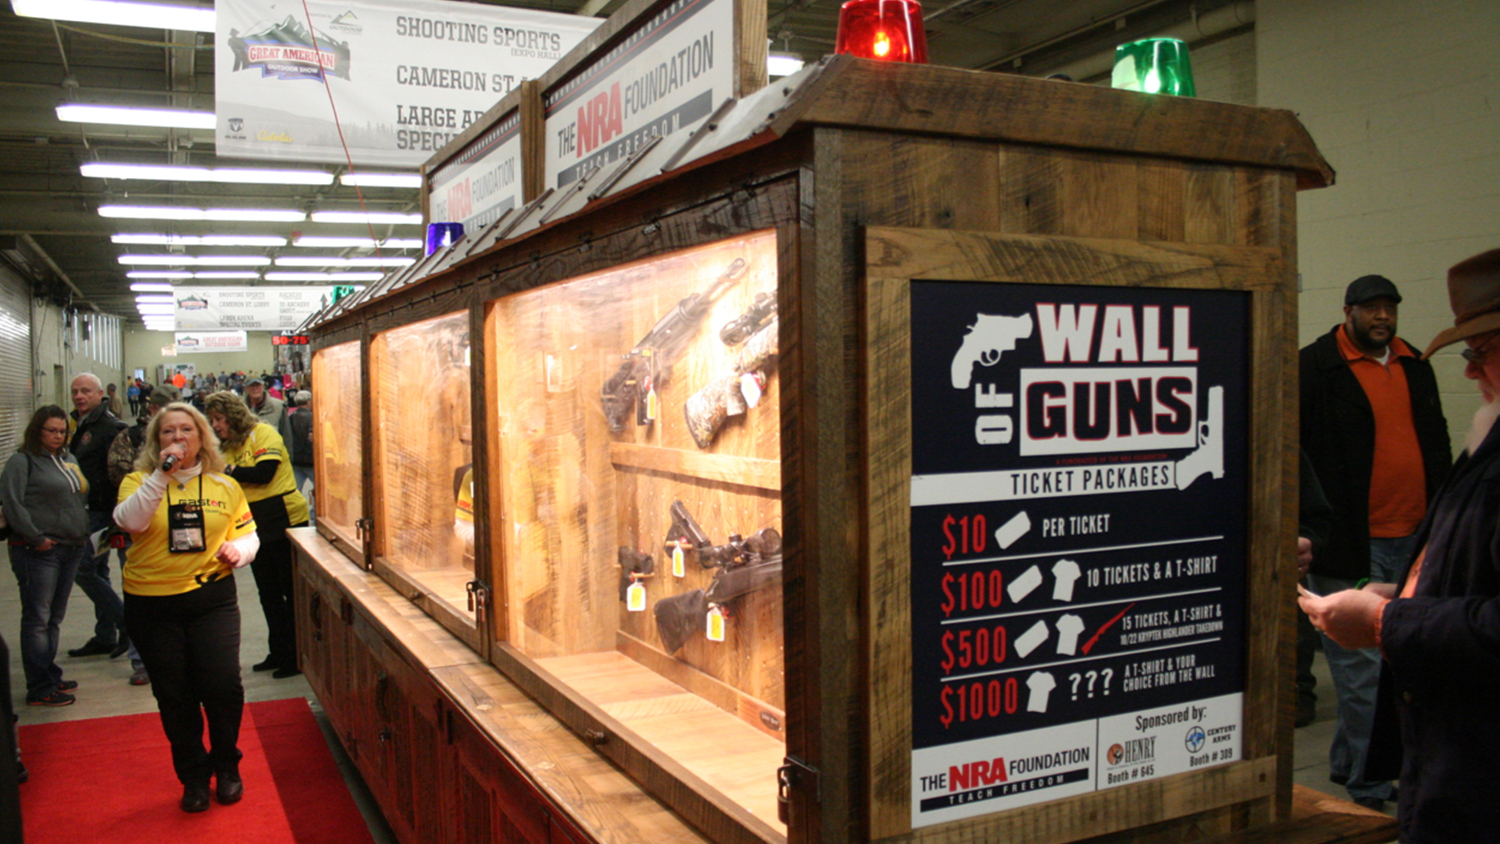 What is on the Wall of Guns?